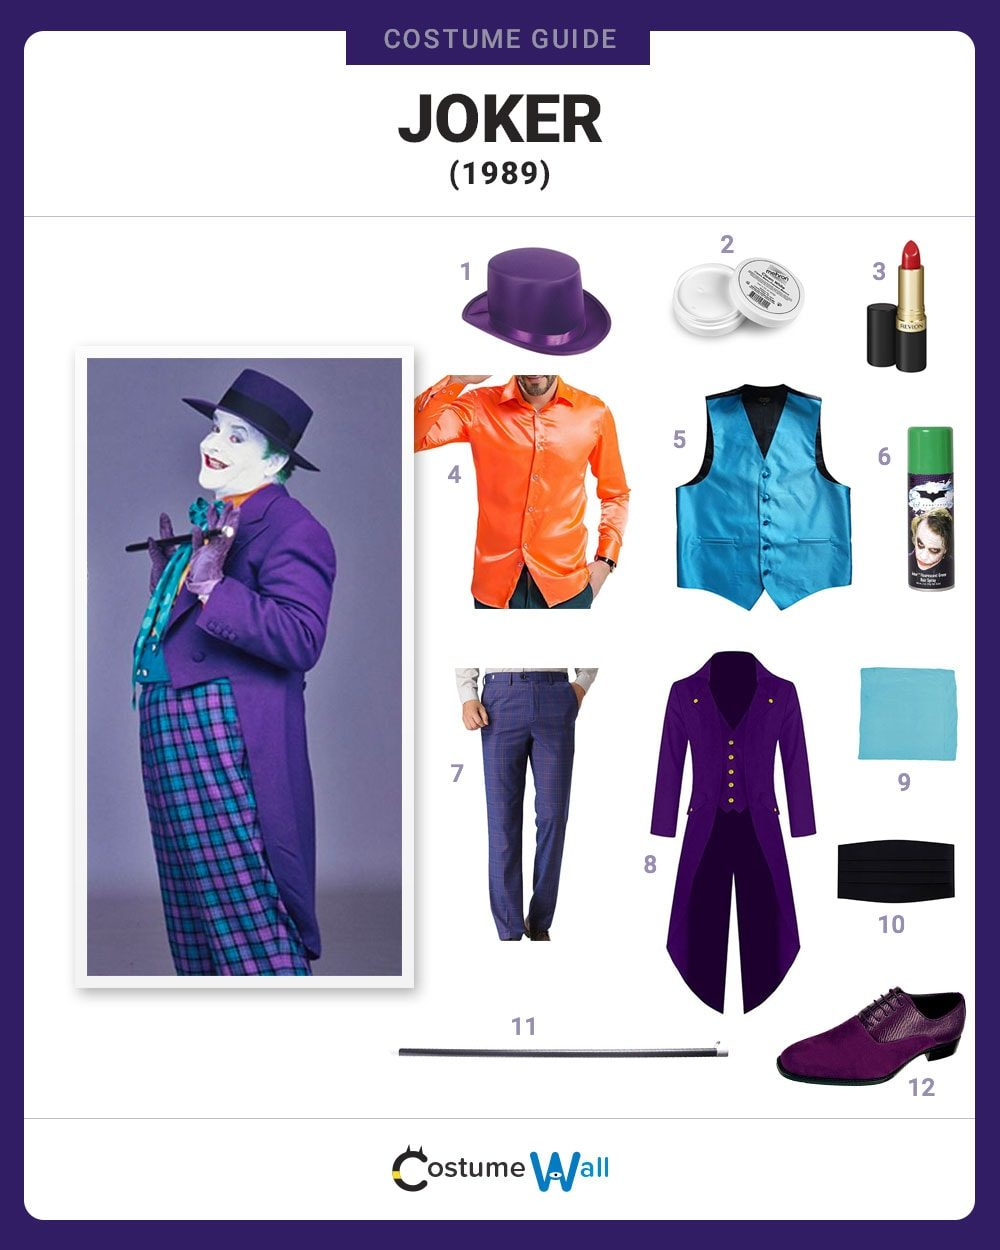 Joker (1989) Costume Guide